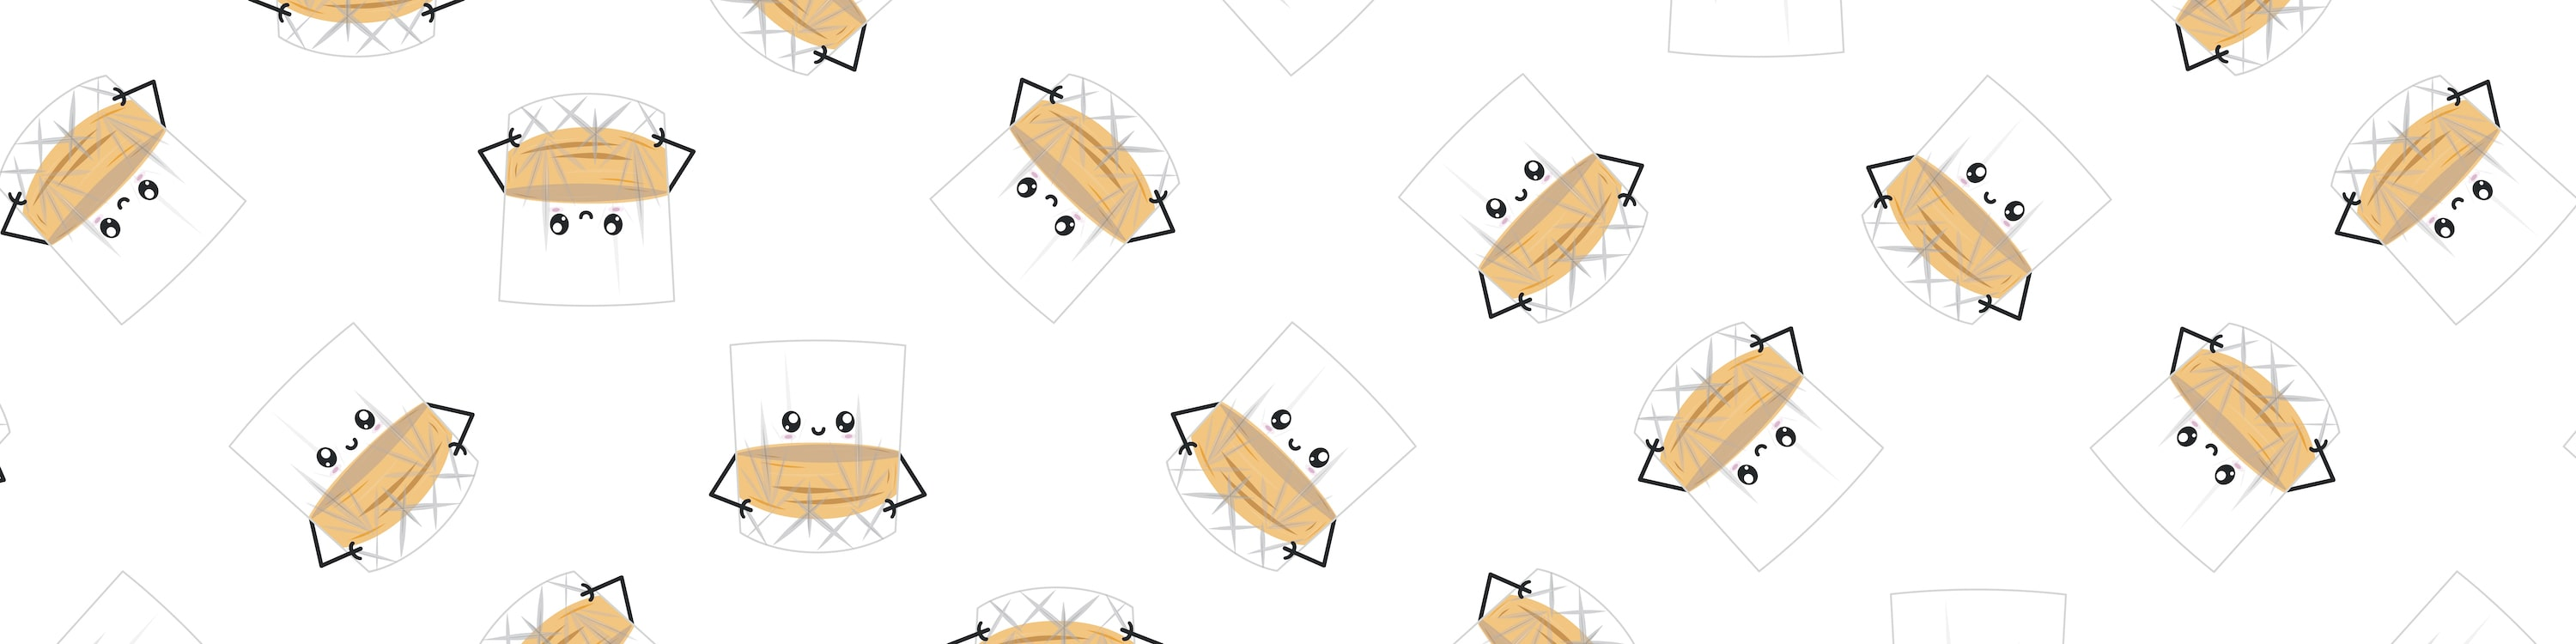 Repeating Patteern of Neat Greeting Card Illustration